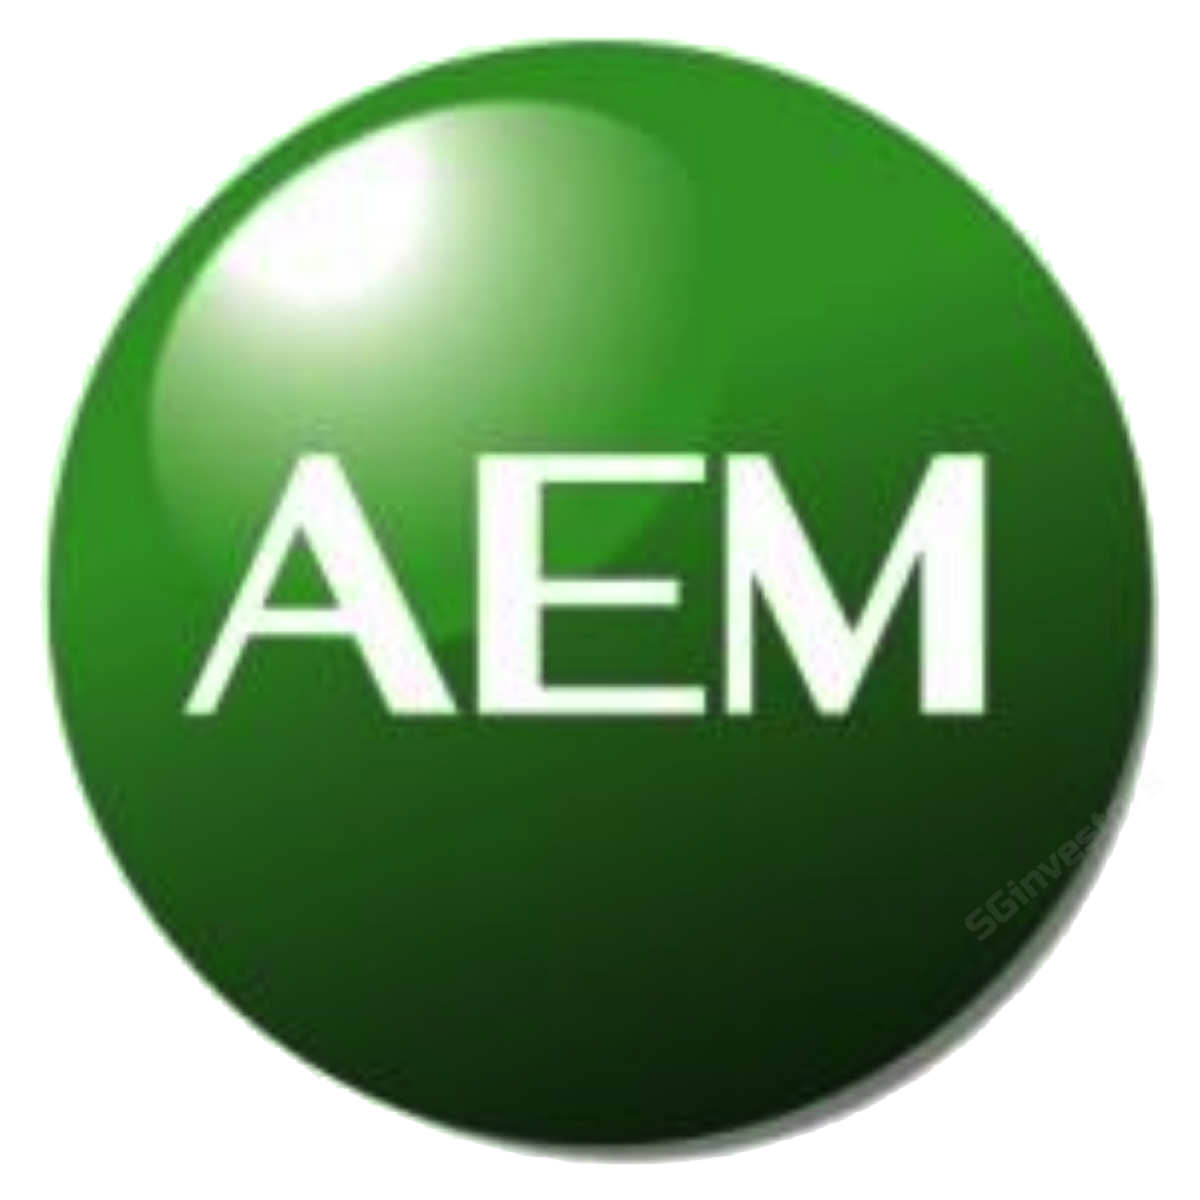 AEM Holdings Ltd - CIMB Research 2017-03-08: Another upcycle begins